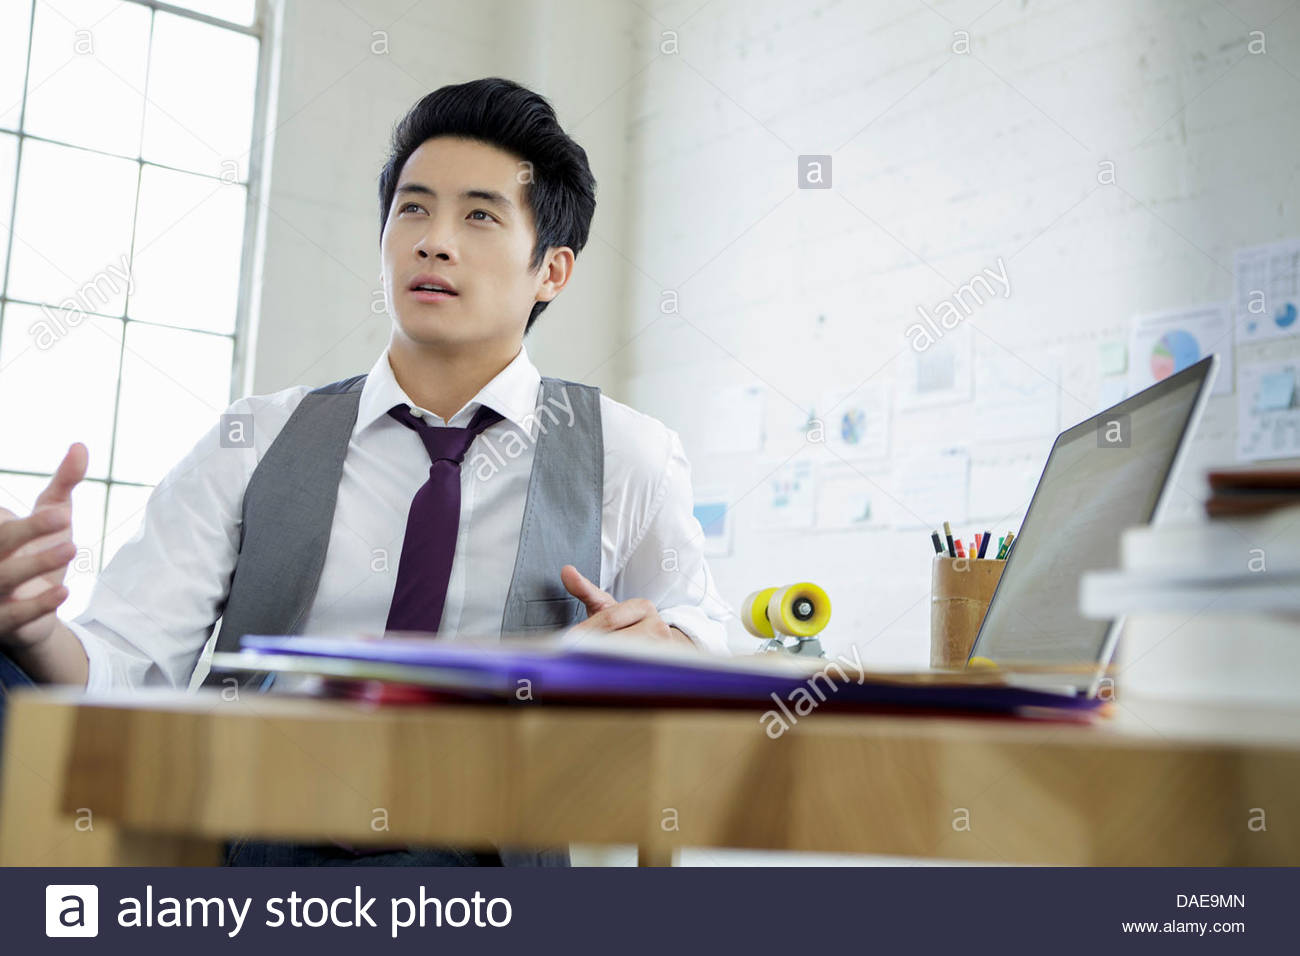 Young man in conversation whilst sitting at office desk - Stock Image